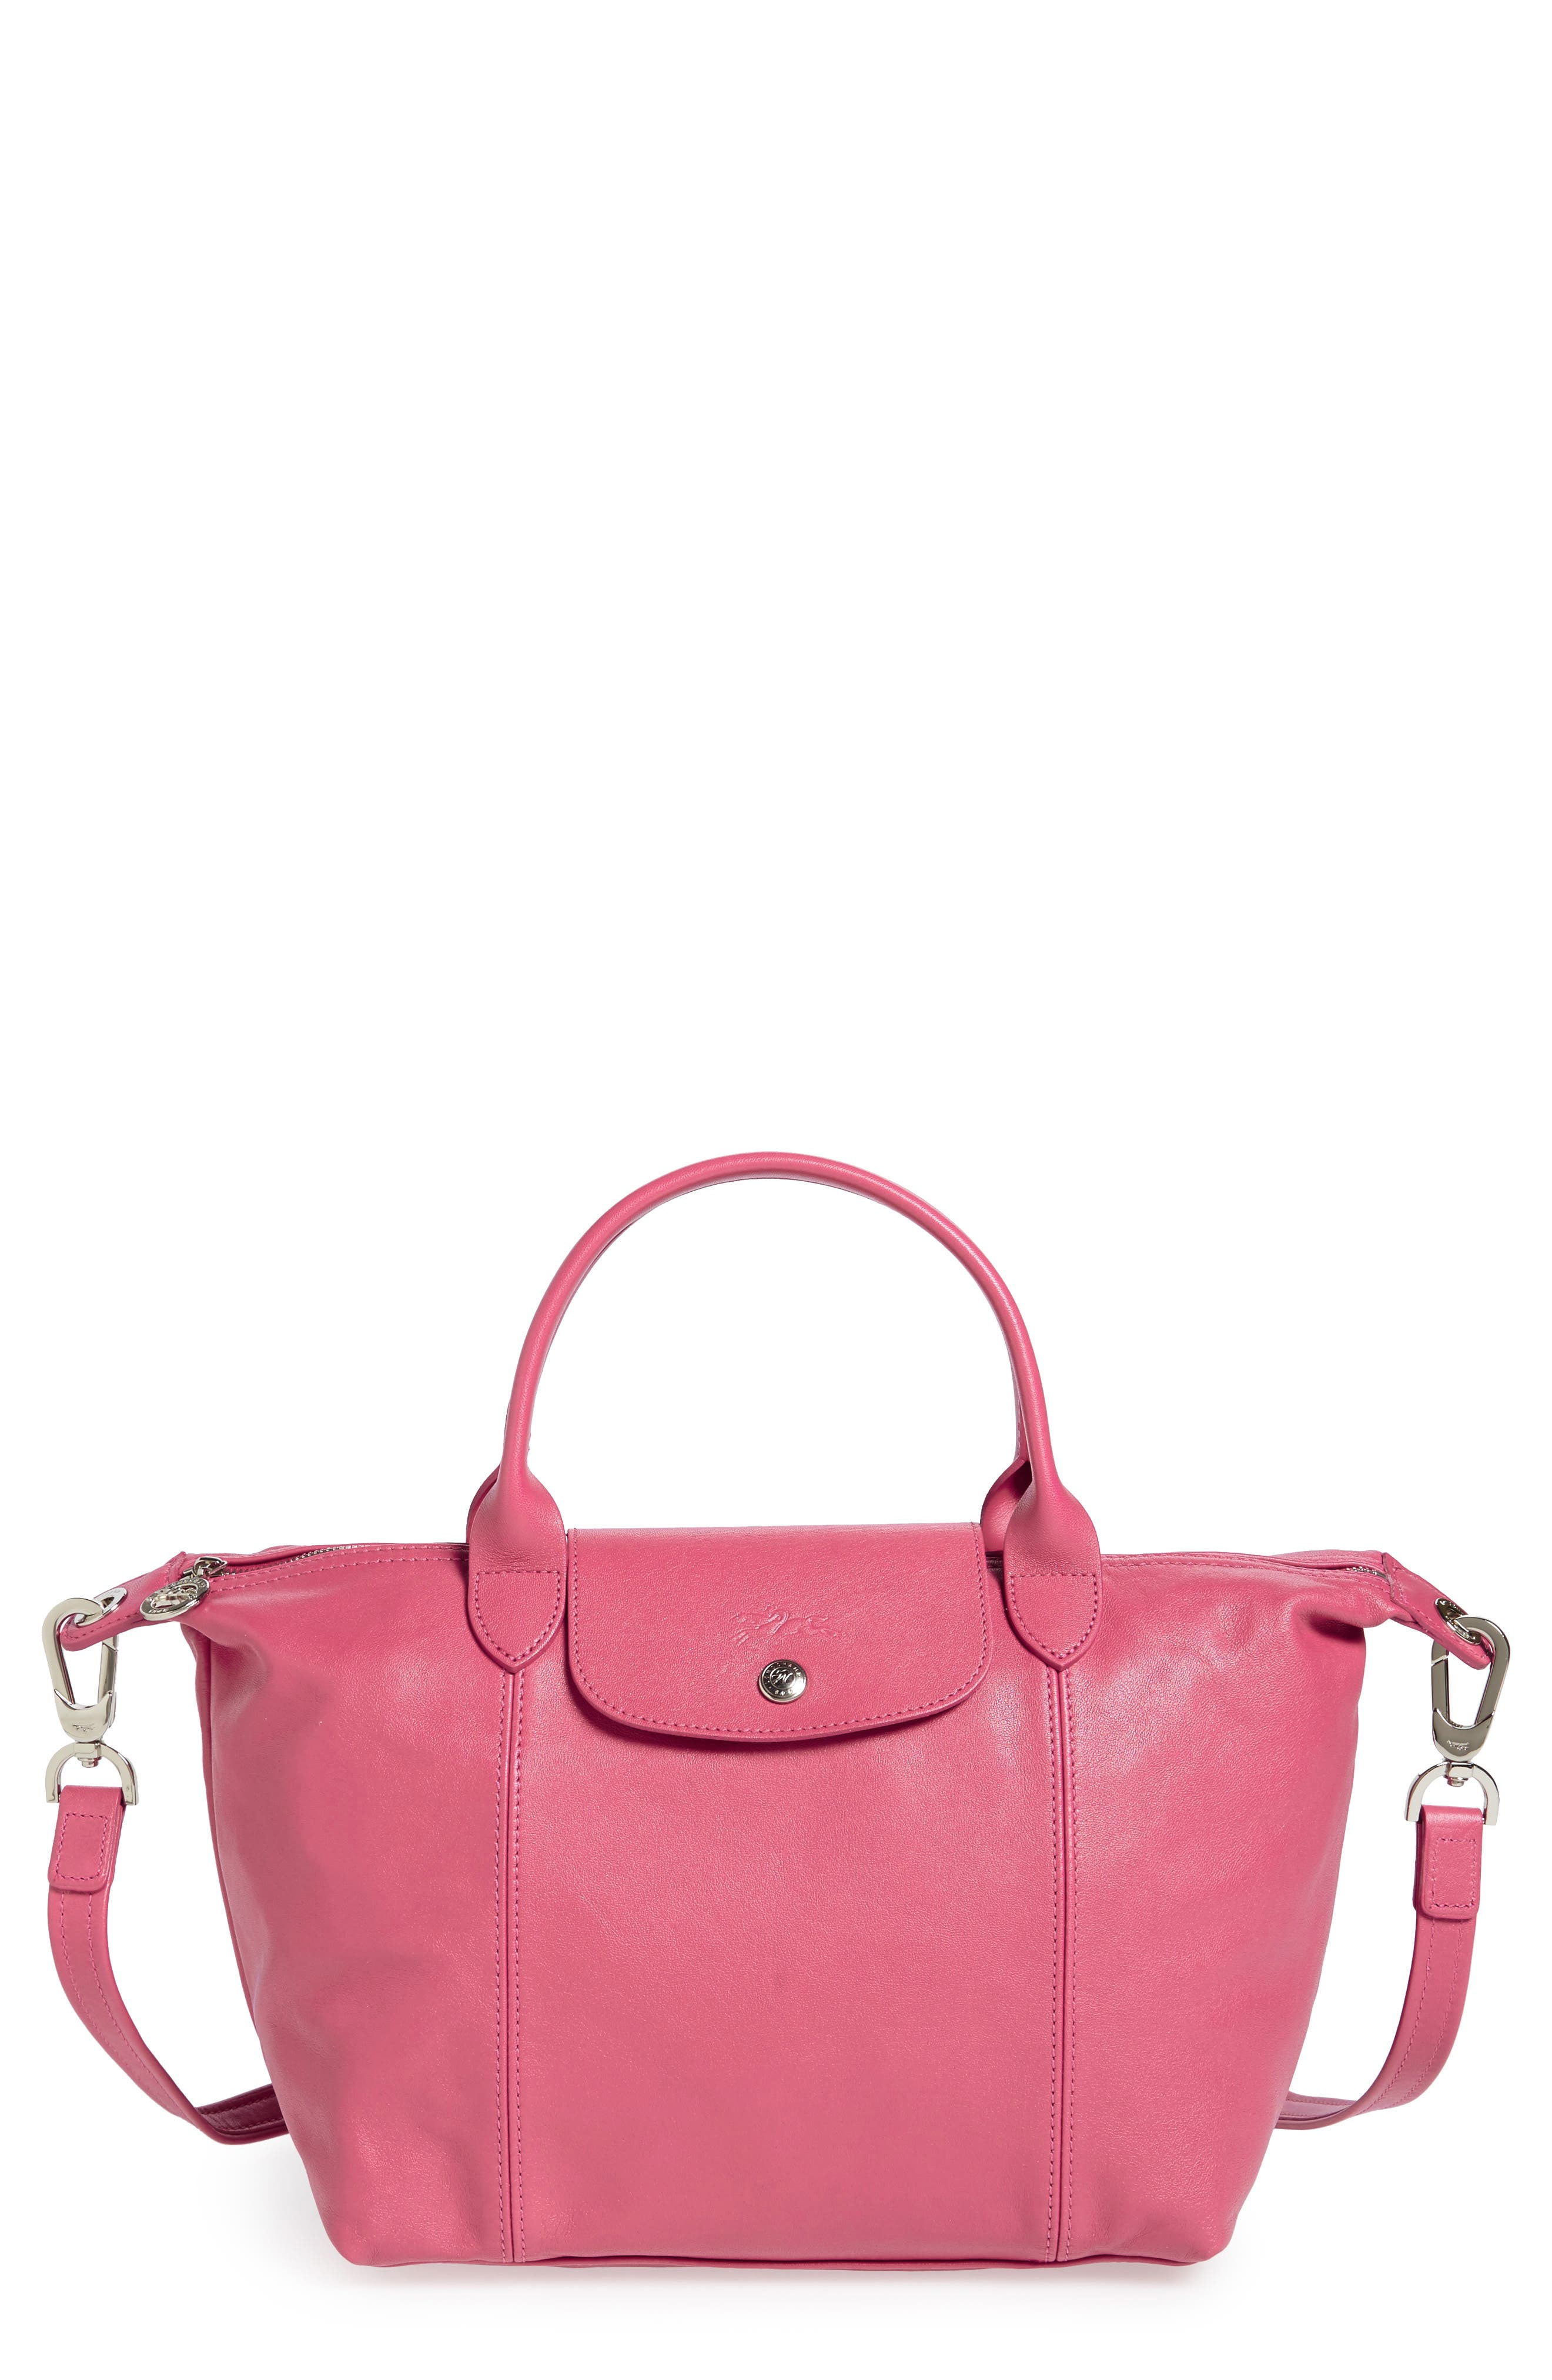 Small 'Le Pliage Cuir' Leather Top Handle Tote,                             Alternate thumbnail 41, color,